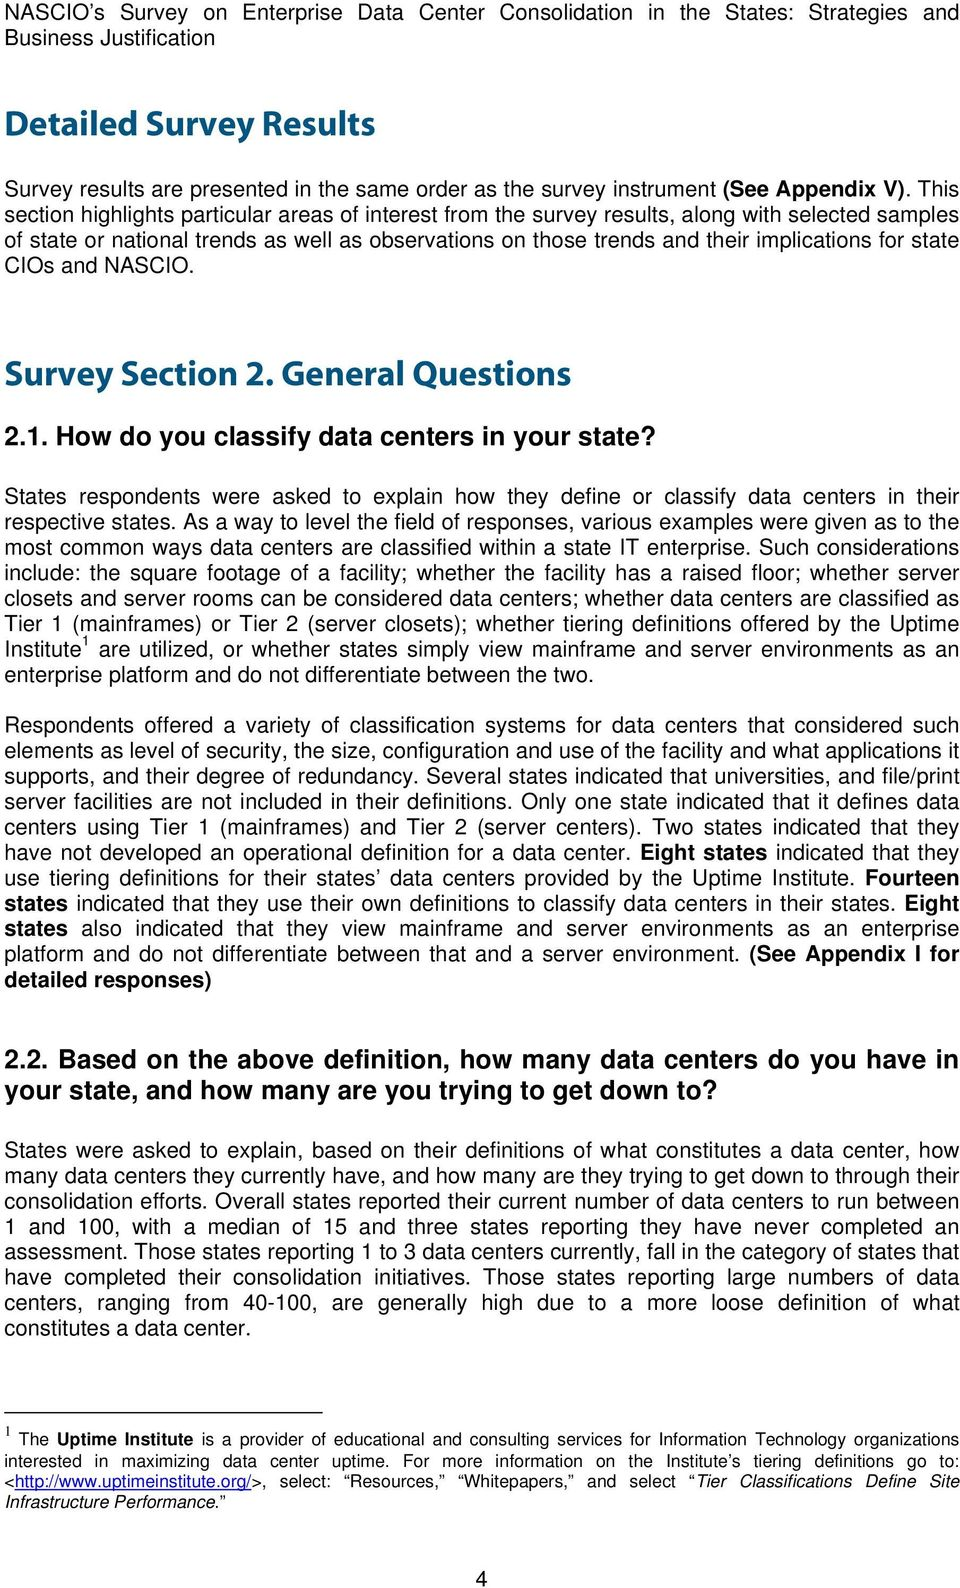 for state CIOs and NASCIO. Survey Section 2. General Questions 2.1. How do you classify data centers in your state?